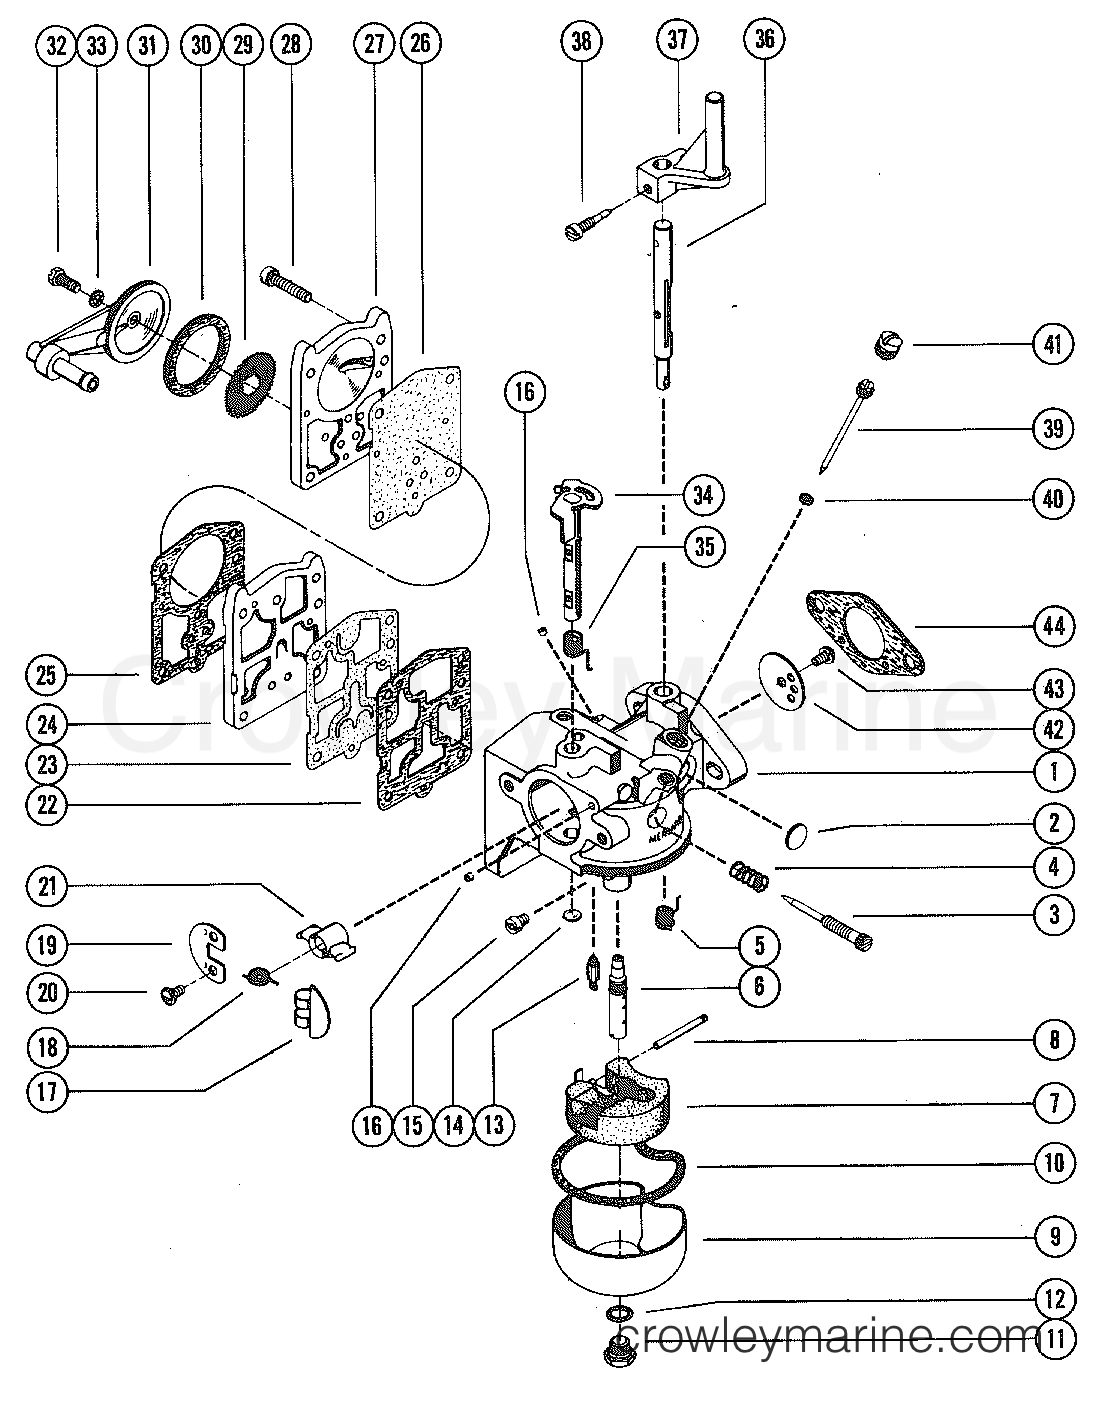 mercury carburetor diagram wiring diagram homecarburetor assembly, complete 1975 mercury outboard 9 8 1110205 mercury 25 hp carburetor diagram mercury carburetor diagram